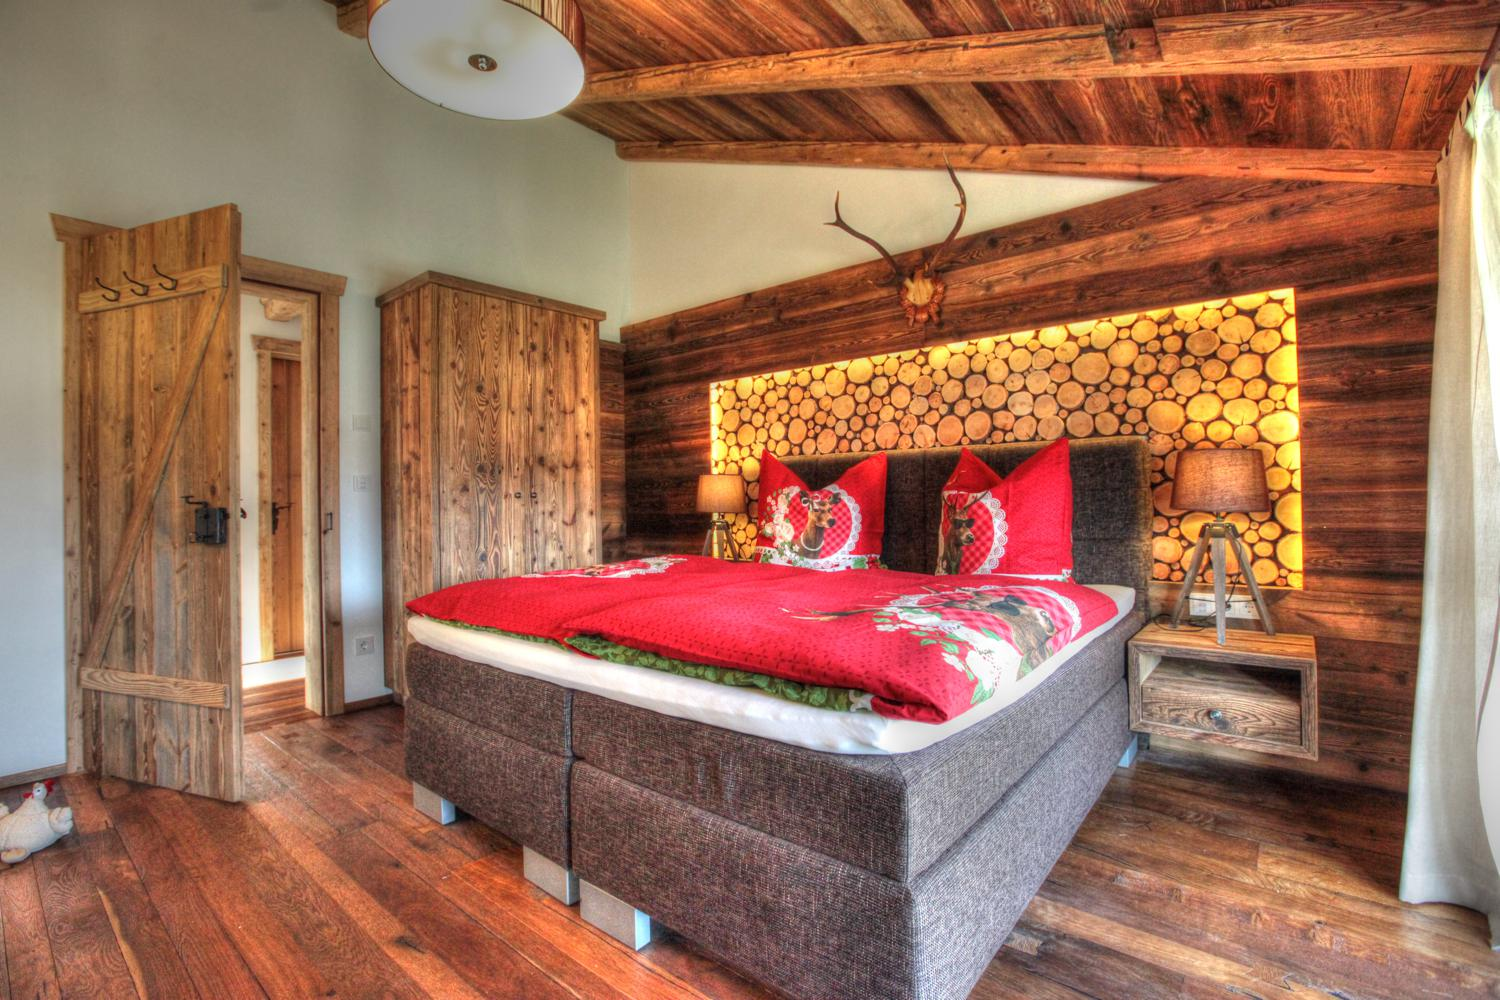 kuschel chalet chalets kaiserwinkl. Black Bedroom Furniture Sets. Home Design Ideas